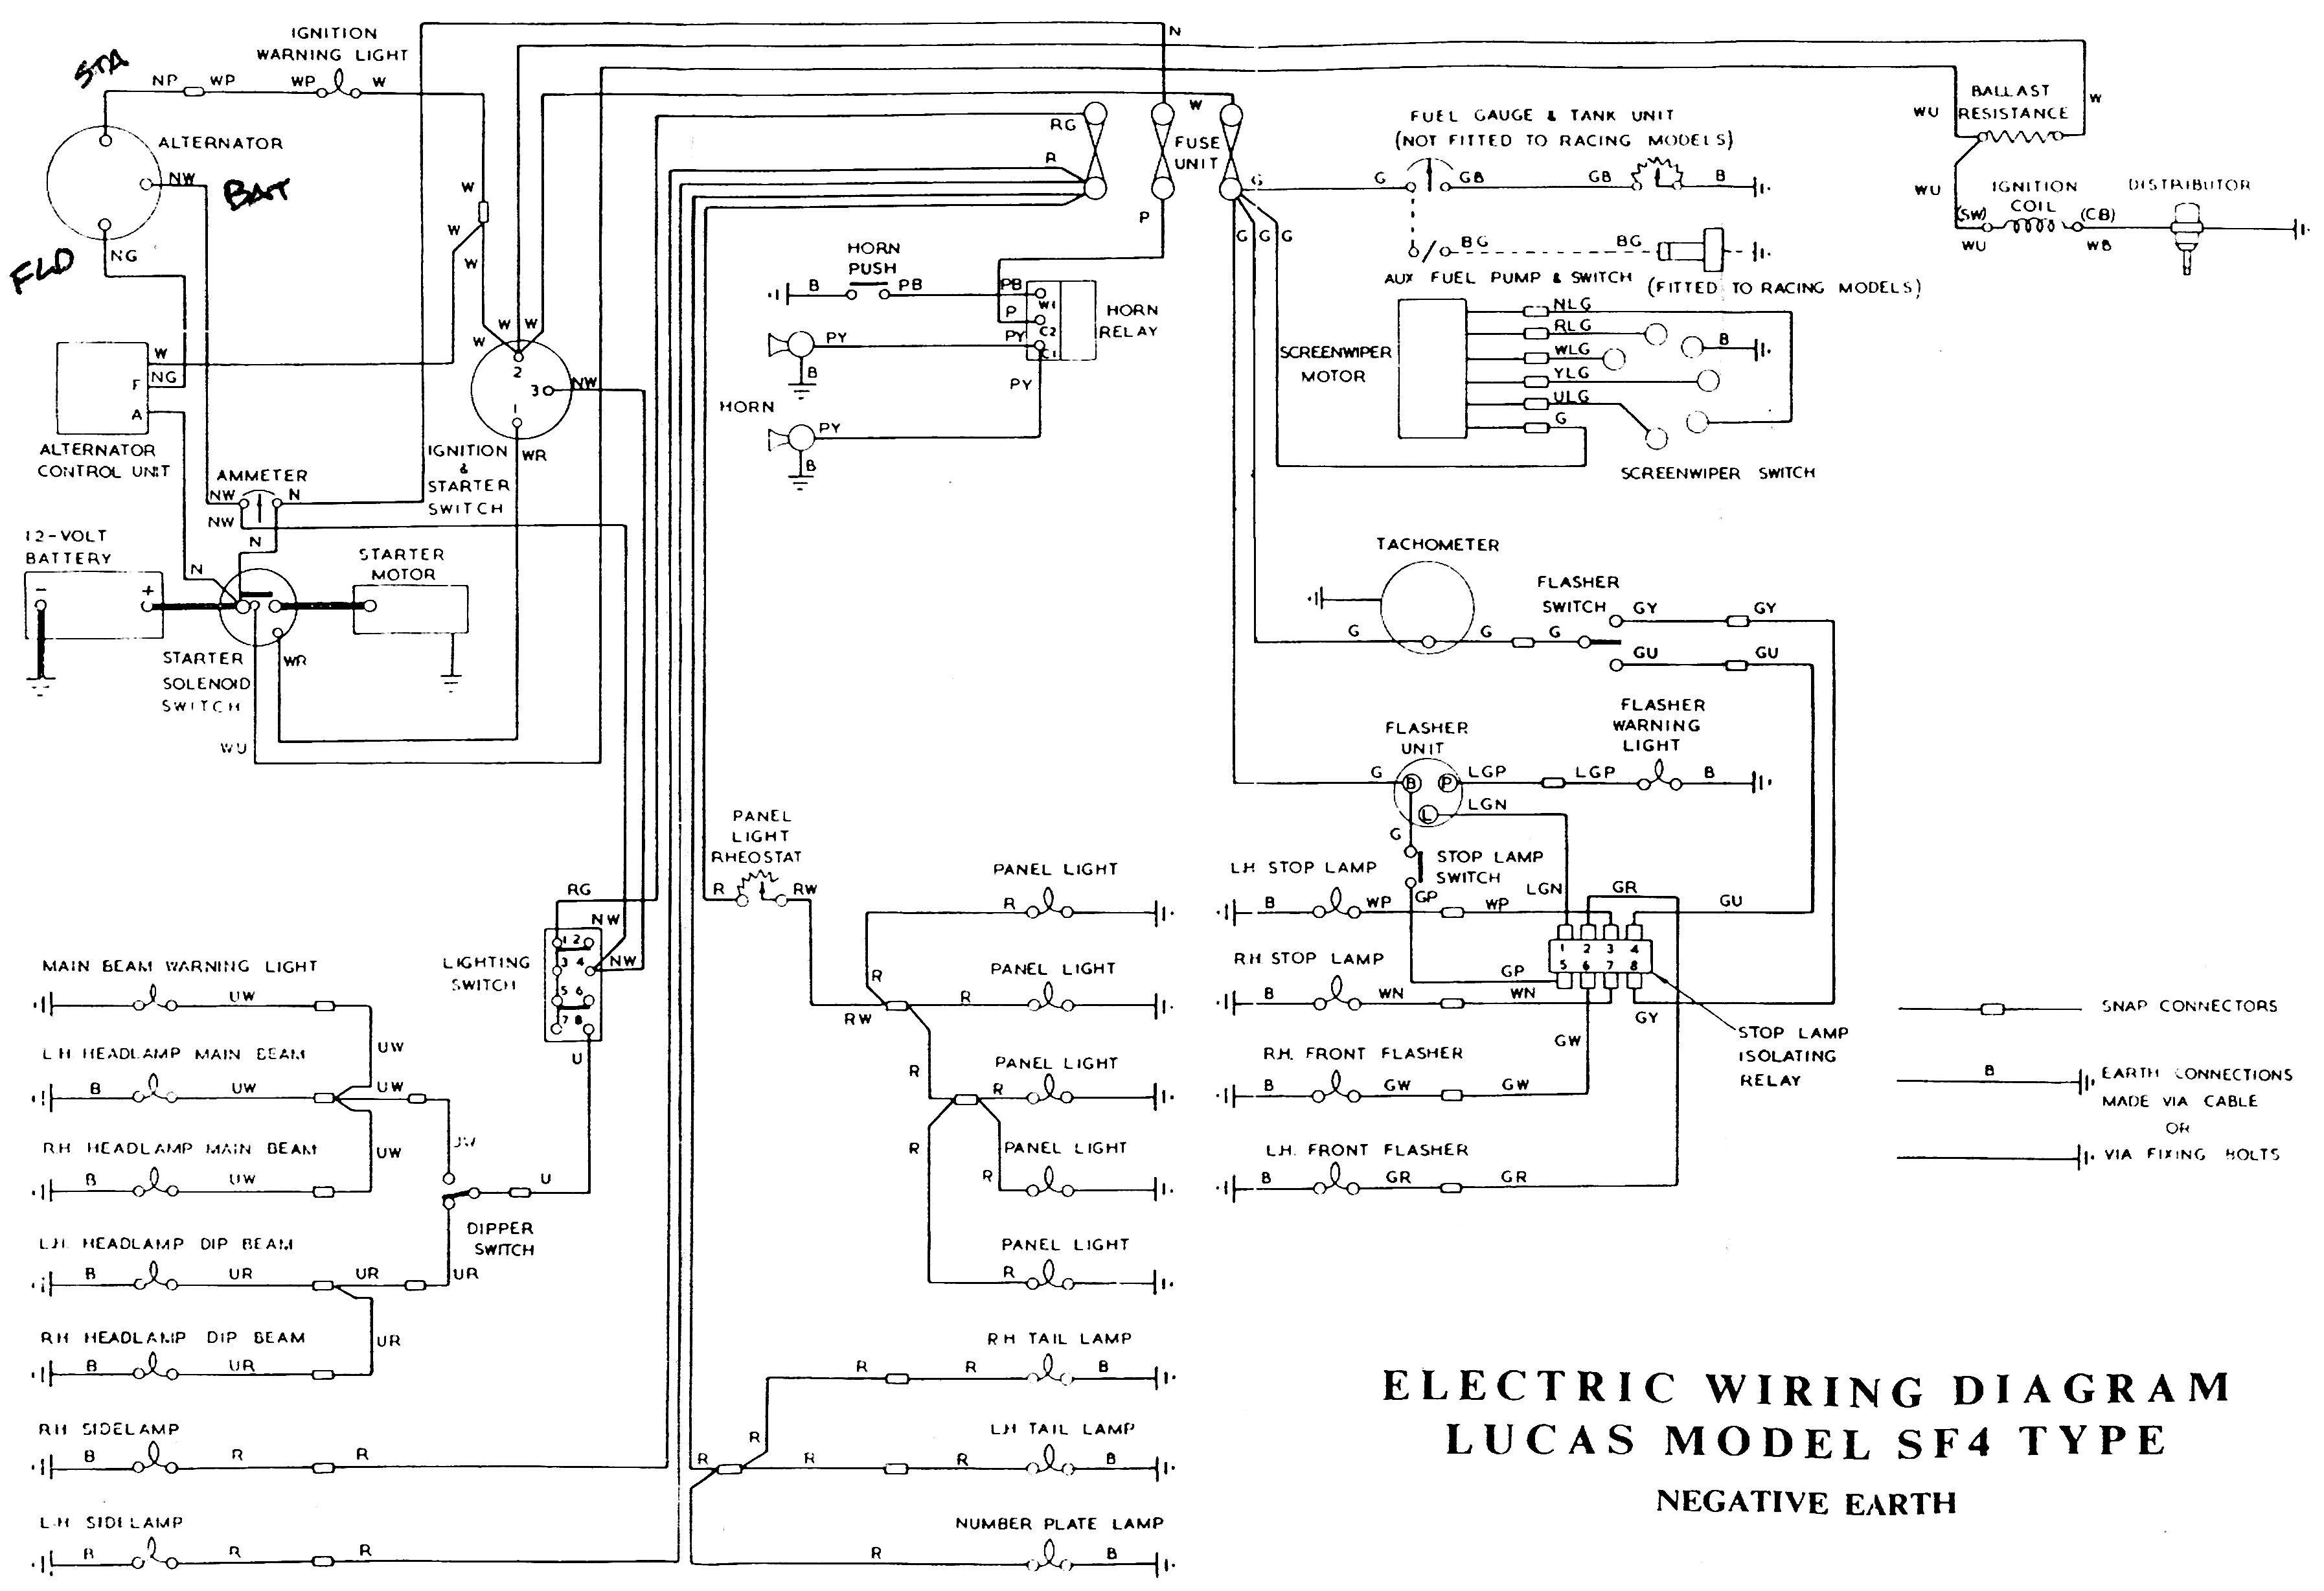 Where to locate a wiring diagram for a 1967 Cobra 427